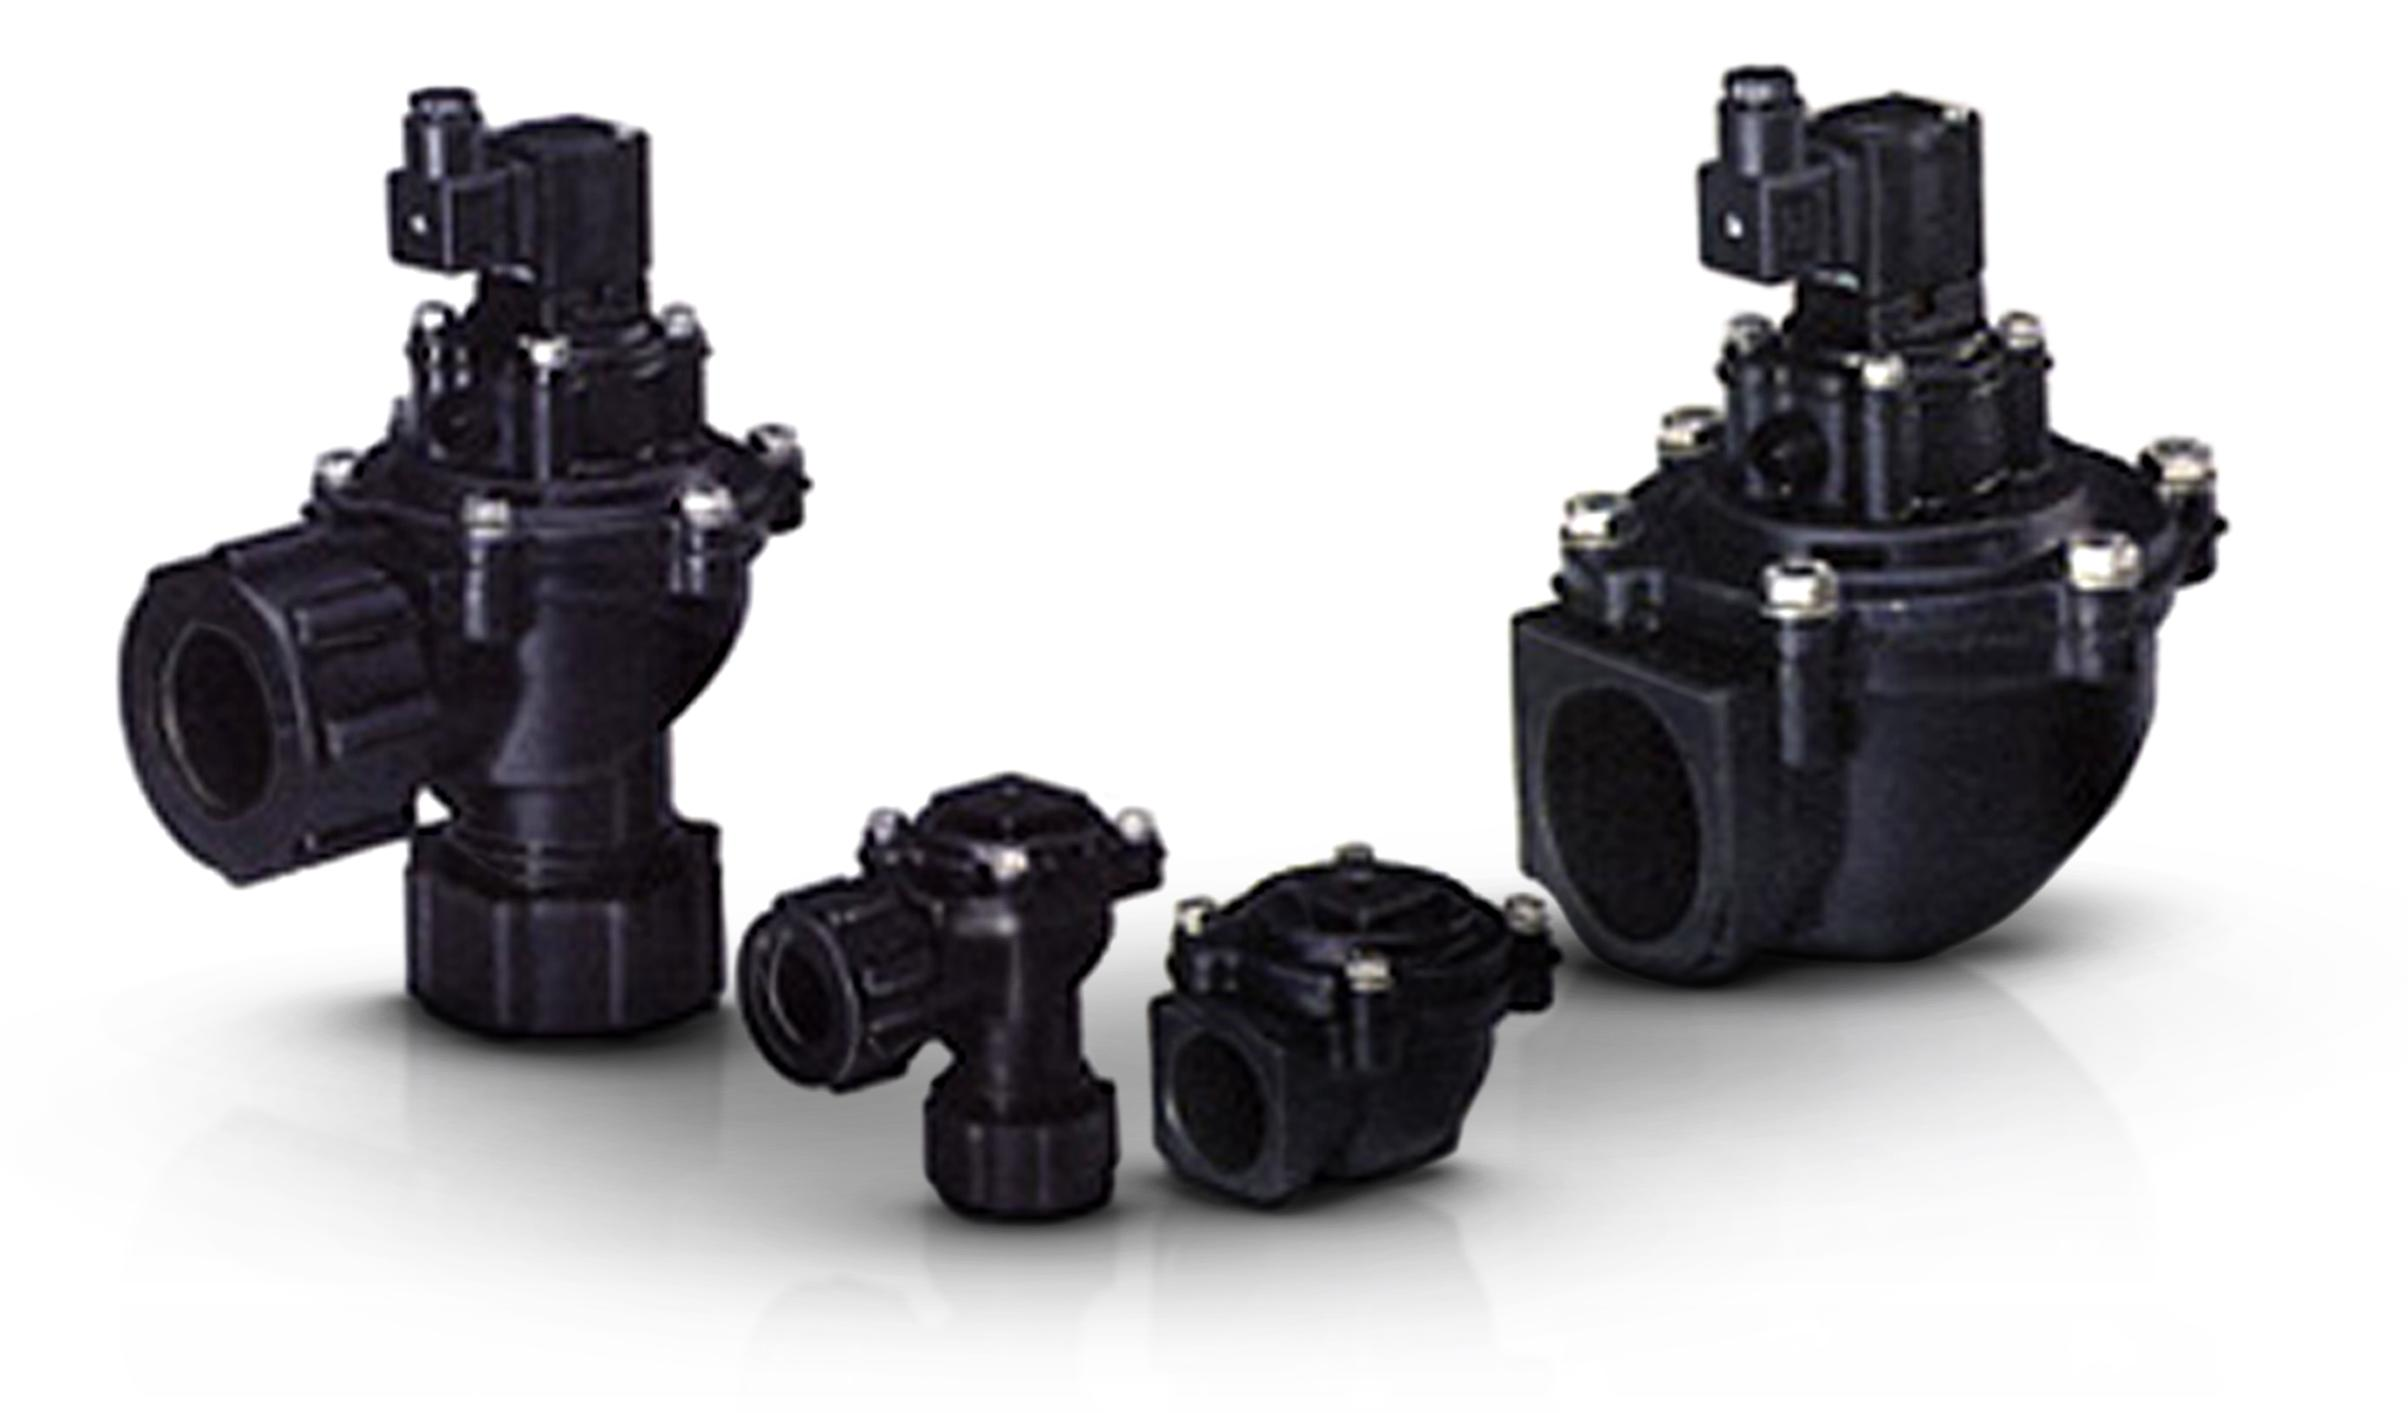 Nff mecair diaphragm and solenoid valves mecair diaphragm and solenoid valves ccuart Gallery